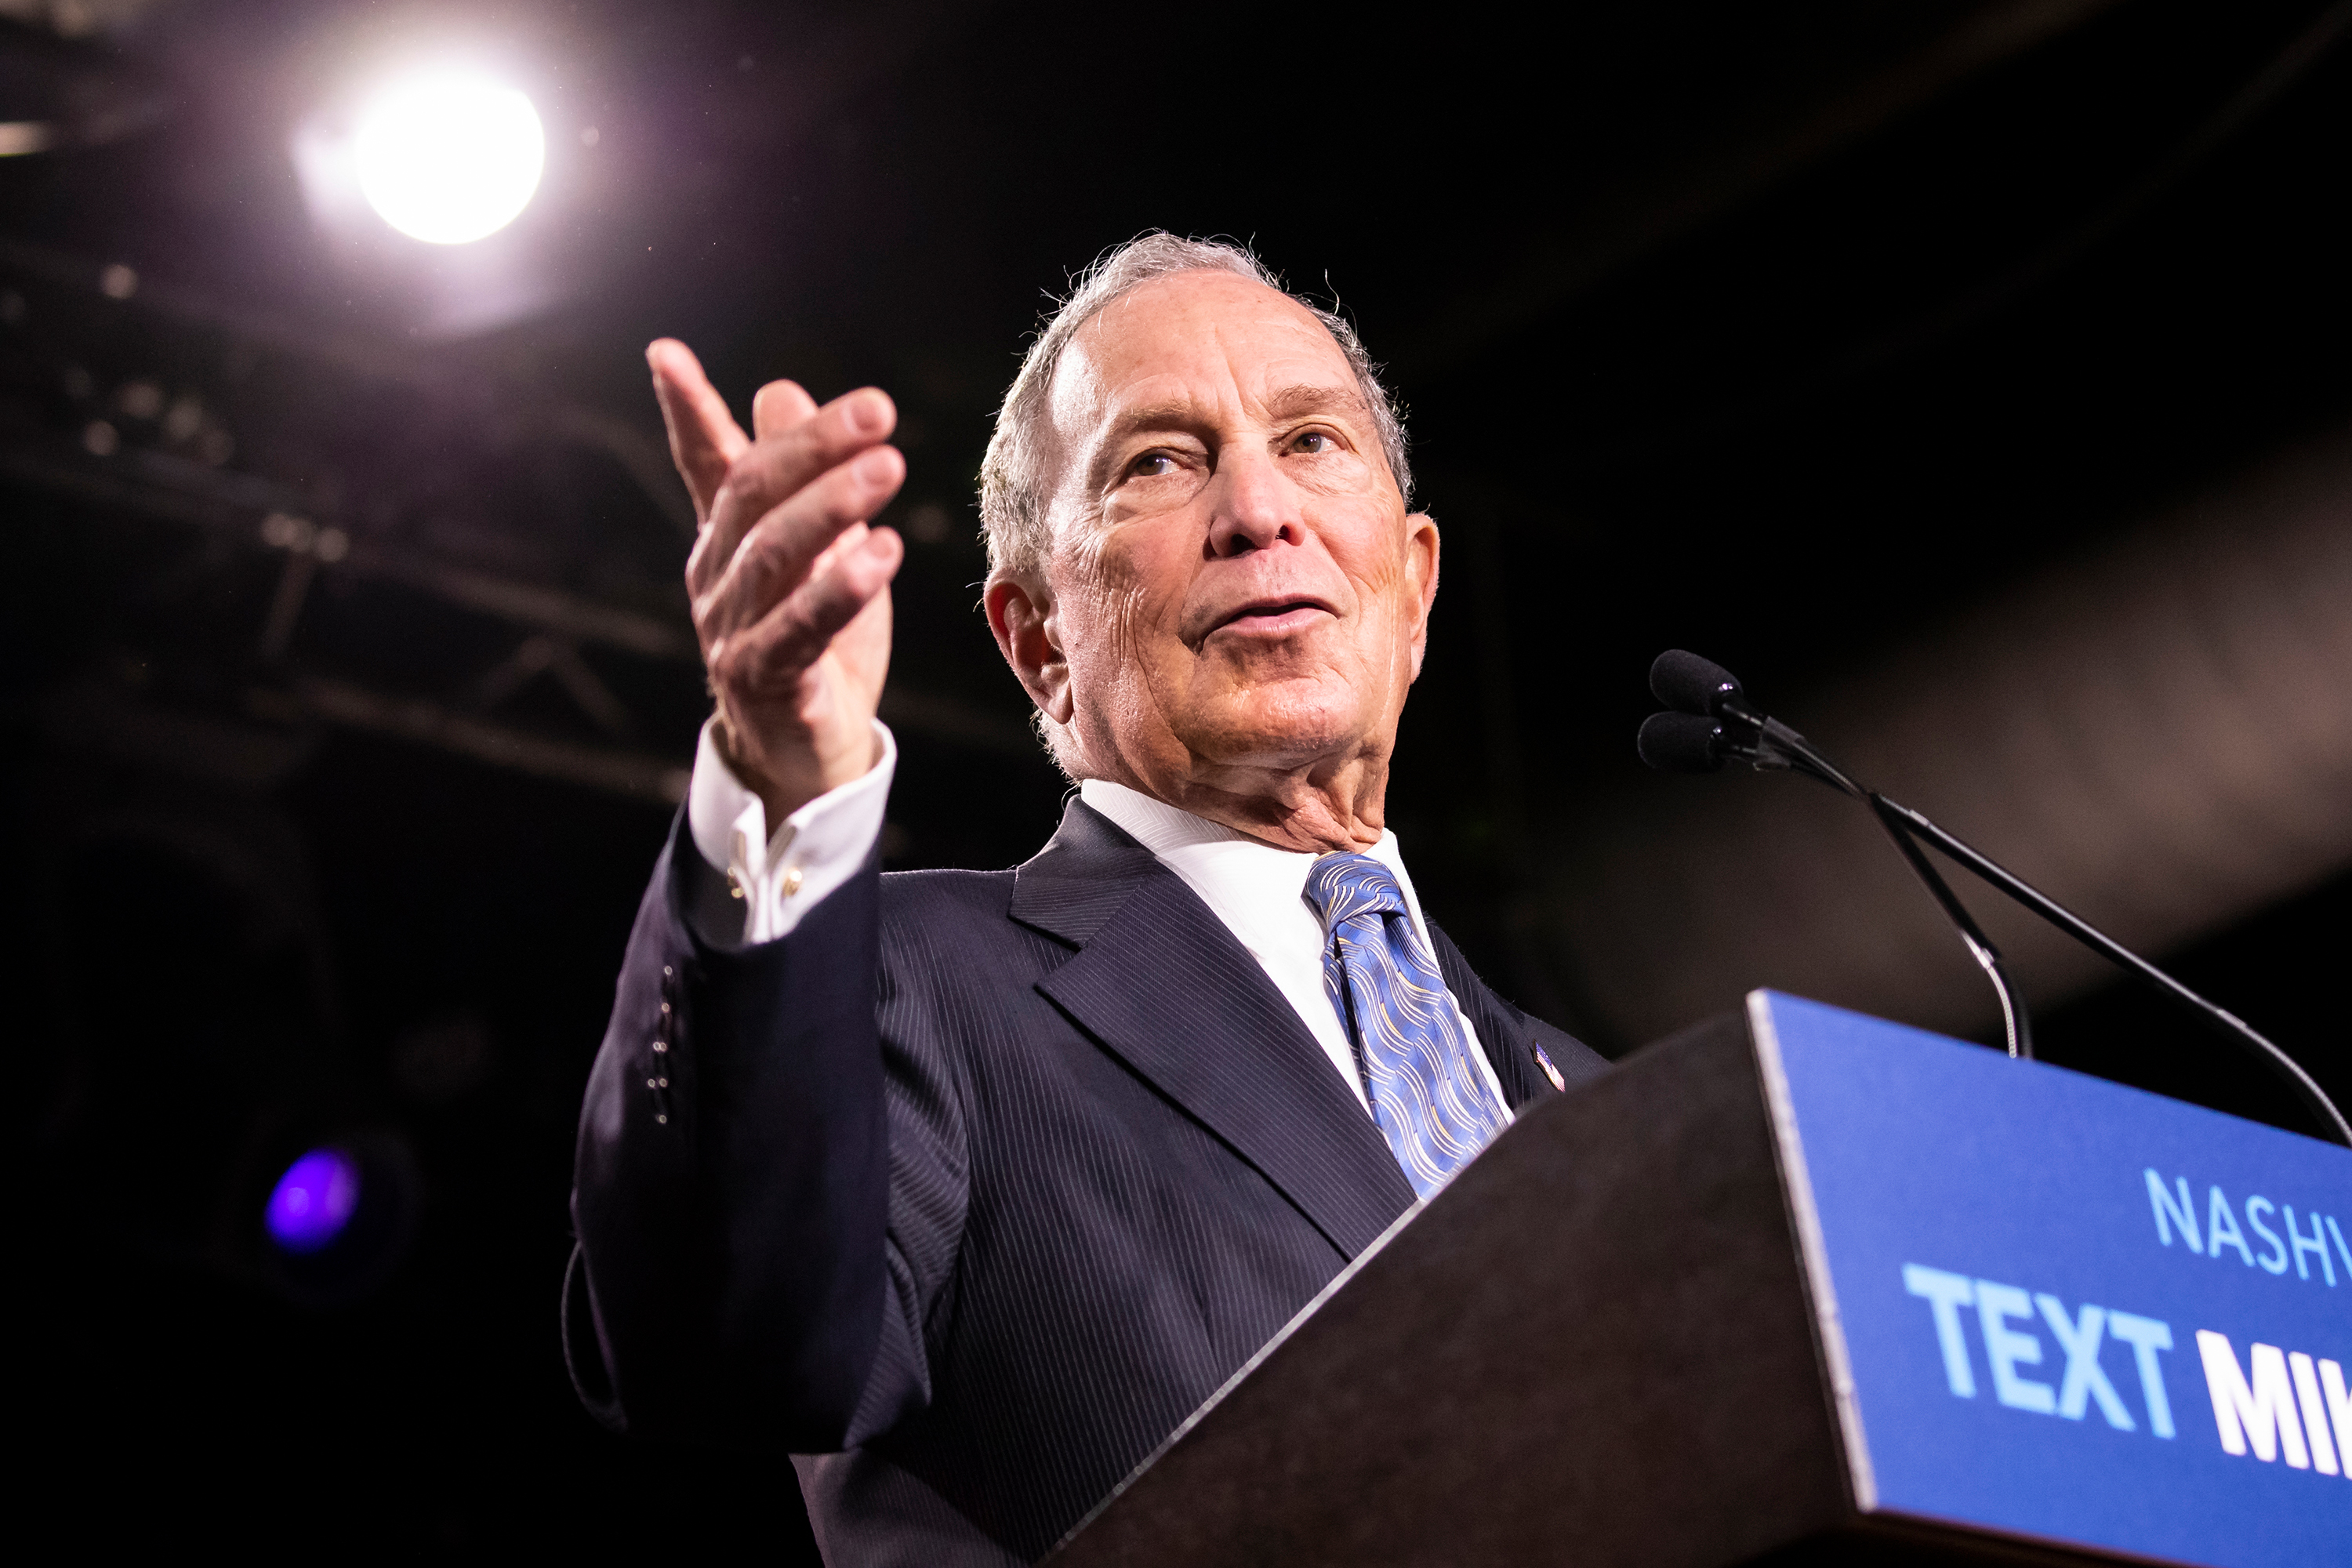 Mike Bloomberg in 2010 called Obamacare legislation 'a disgrace' and 'another program that's going to cost a lot of money'